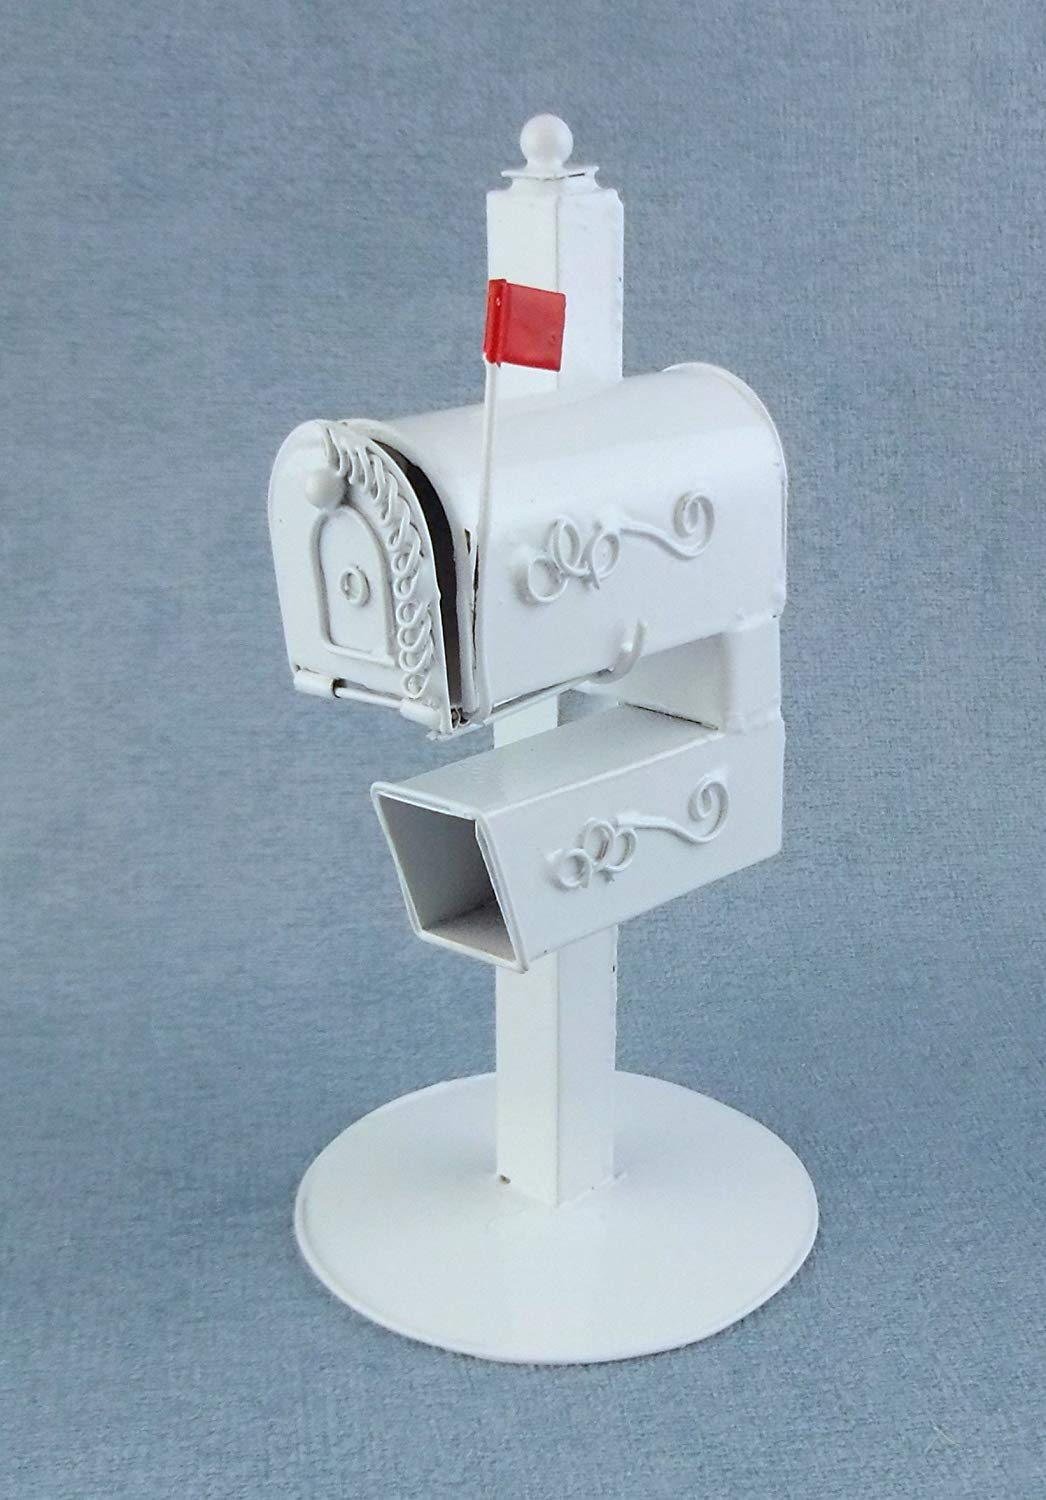 Dollhouse Miniature Mailbox on Stand Stand Stand 4147d0 - kiujo